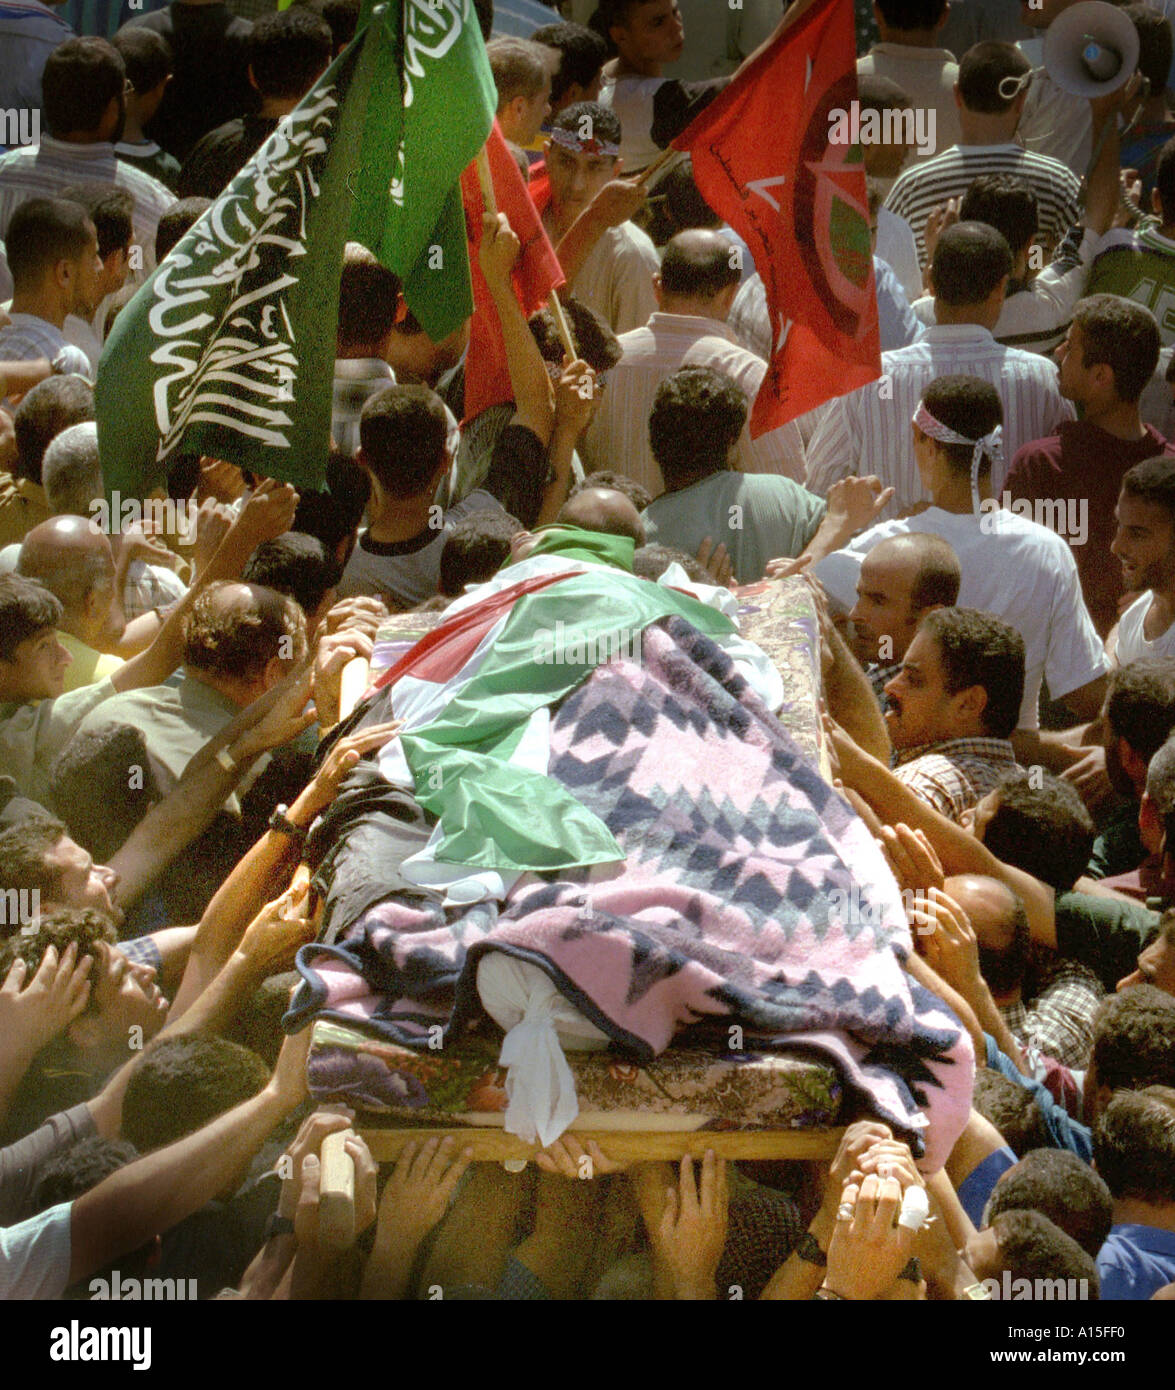 Yusuf Khalifa 18 is carried out of a mosque in Gaza Monday October 9 2000 Photo by Ami Vitale - Stock Image